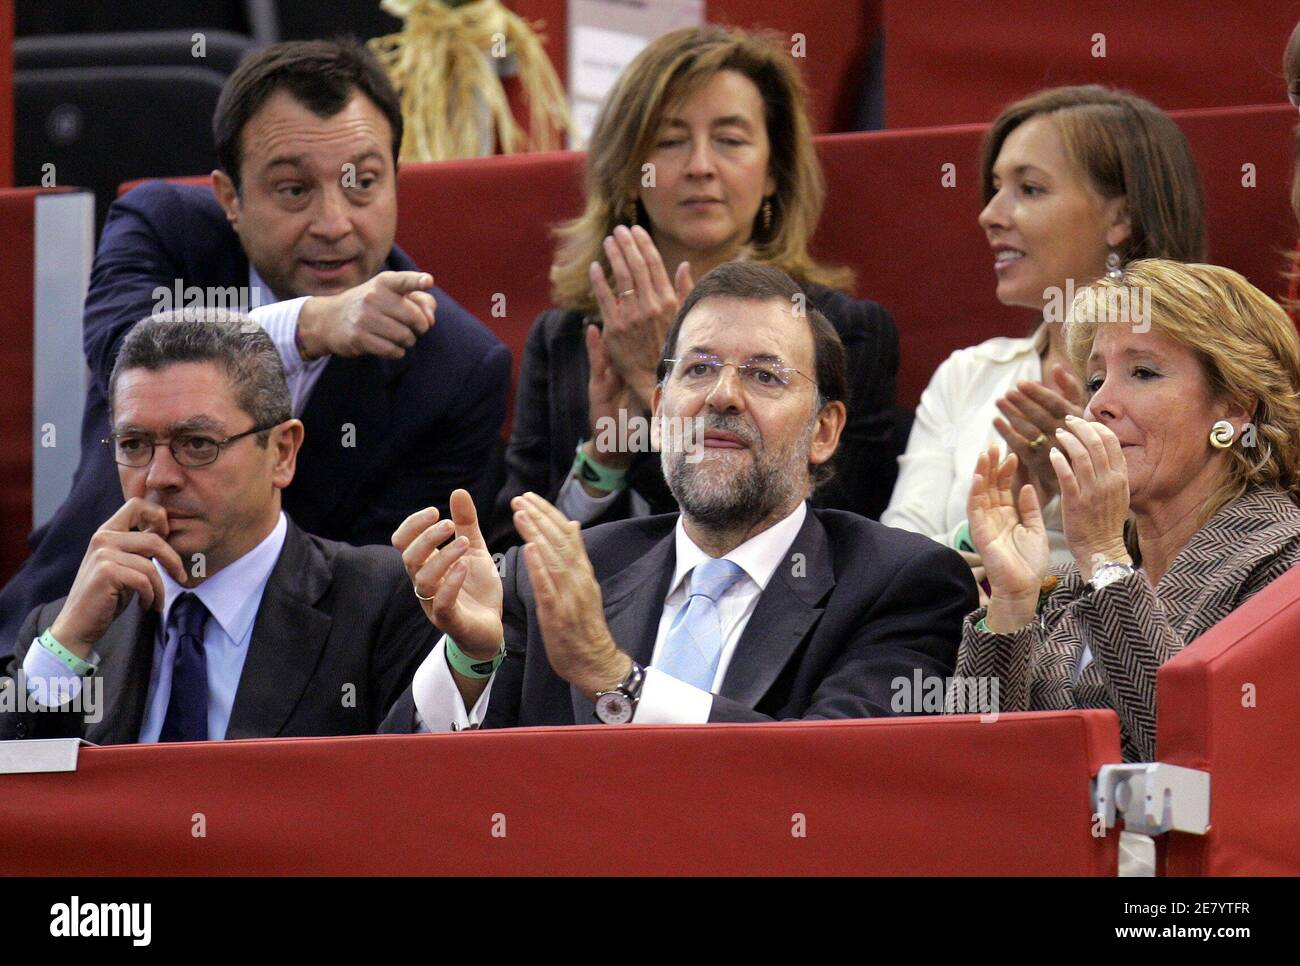 (bottom L-R) Madrid's mayor Alberto Ruiz-Gallardon, opposition leader Mariano Rajoy and President of Madrid's regional government Esperanza Aguirre attend the quarterfinal tennis match of U.S. Robby Ginepri and David Ferrer of Spain at the Madrid Masters Series tennis tournament in Spain, October 21, 2005. Ginepri won the match by 6-1 6-4. REUTERS/Andrea Comas Stock Photo